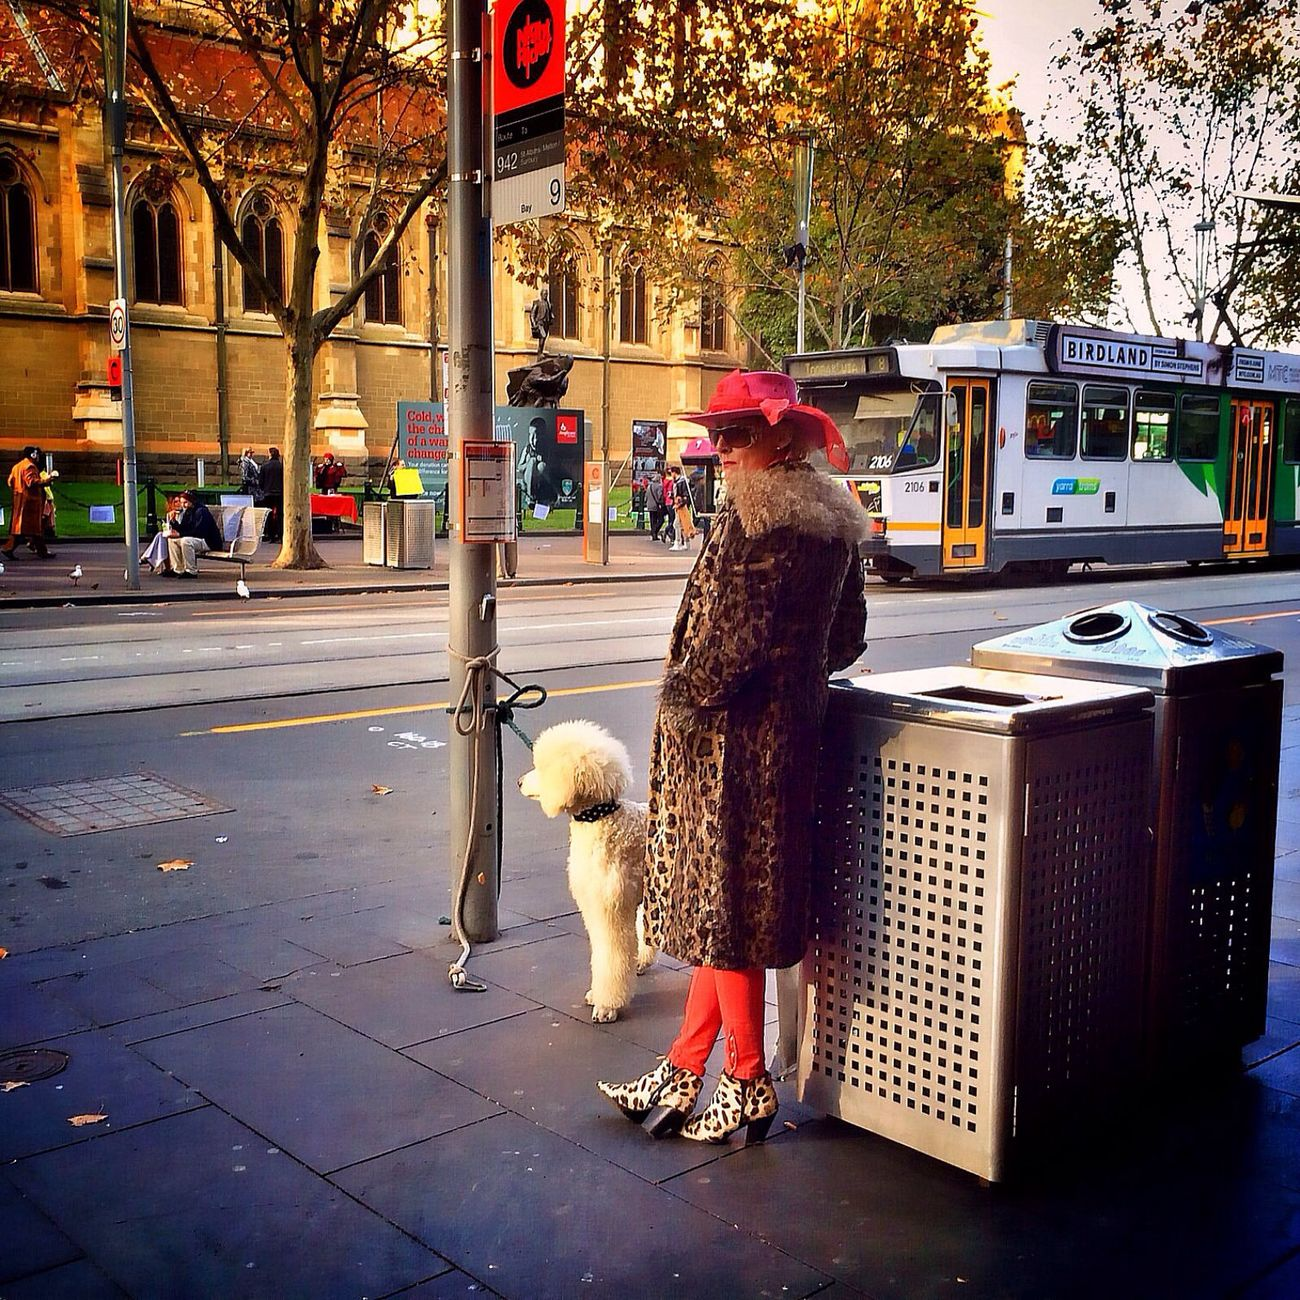 Streetphotography Melbourne Melbourne City Street Street Life People Watching Eye4photography